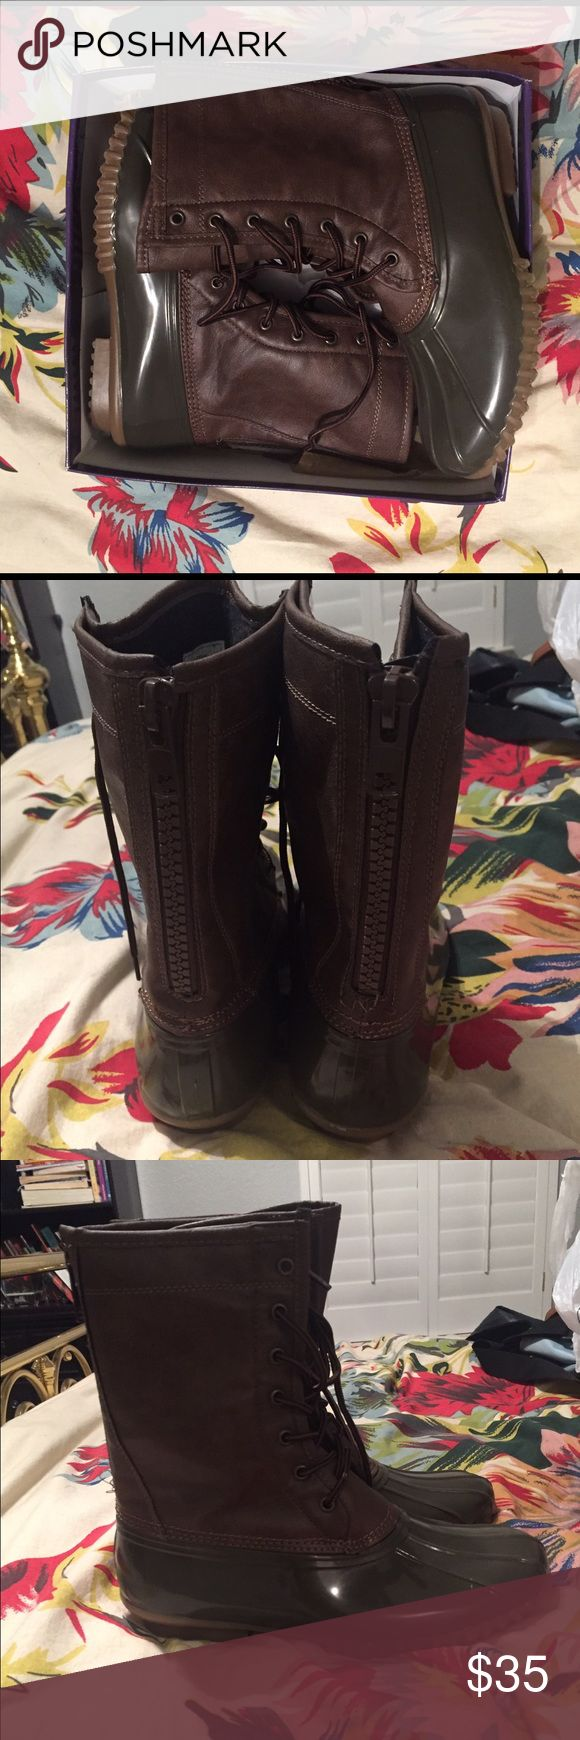 Madden Girl Duck Boots- Size 10! These have never been worn, and fit a little smaller than a normal size 10, but are so cute and comfy! Madden Girl Shoes Winter & Rain Boots